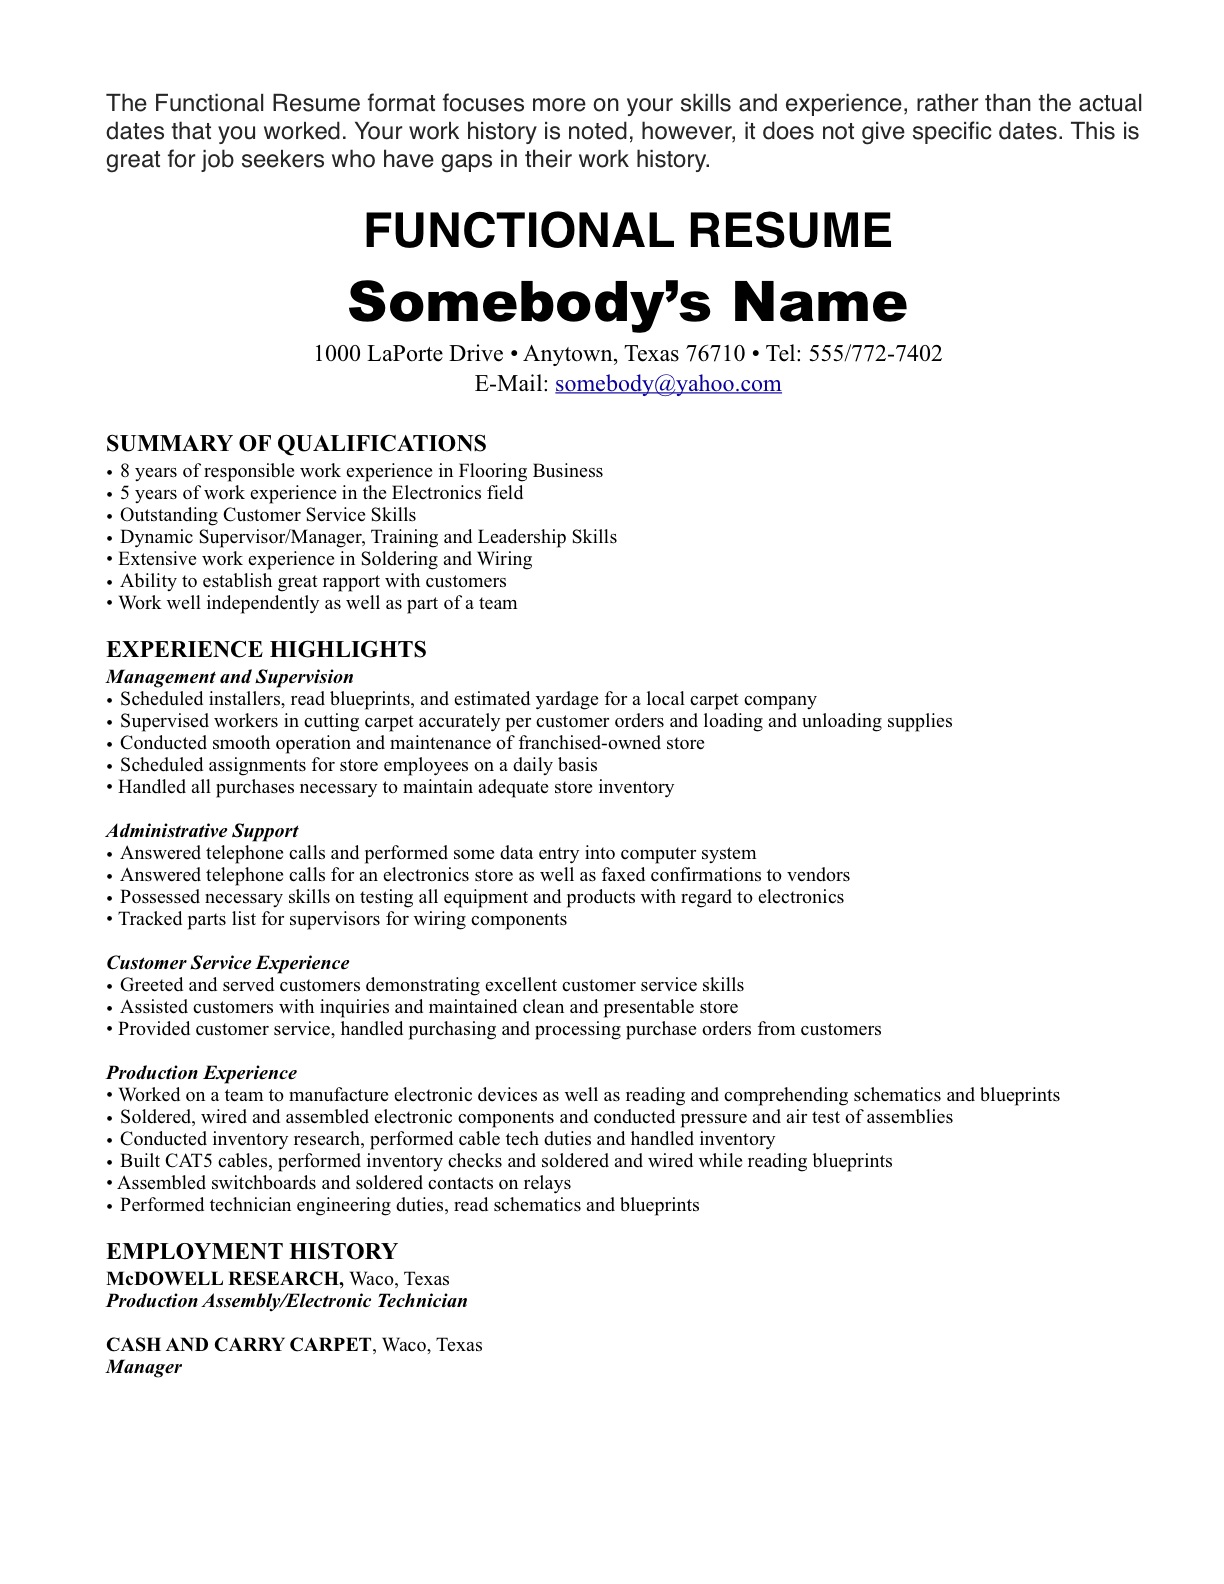 no work history resume